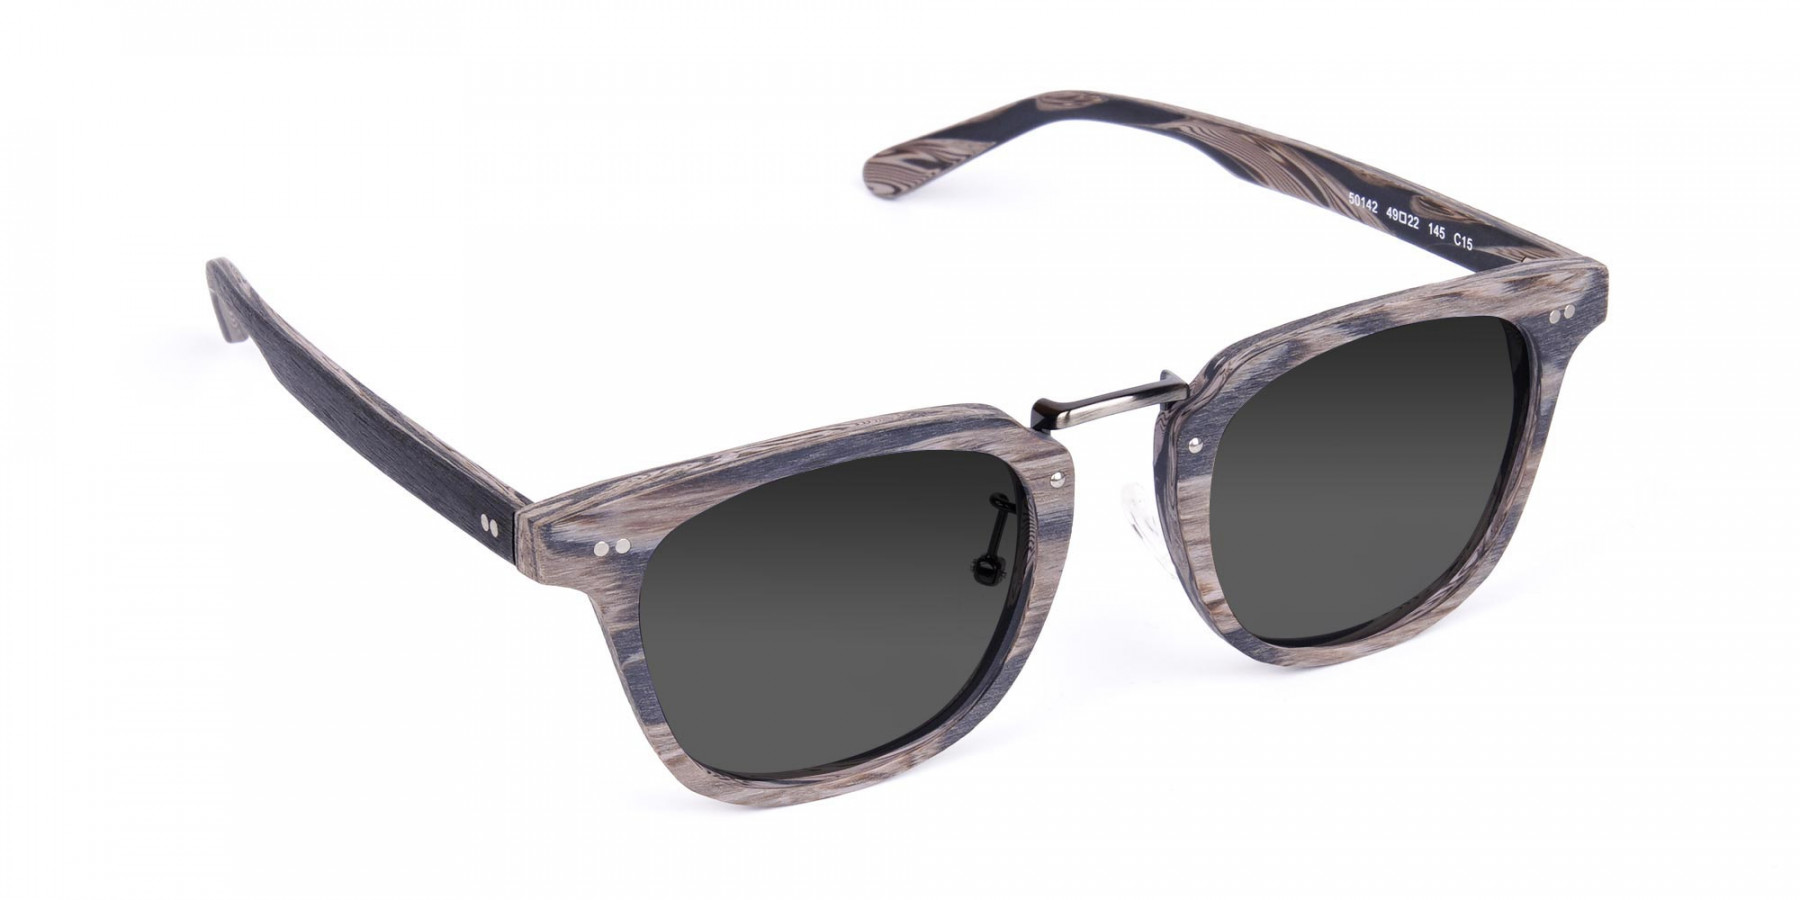 Wooden-Grey-Frame-and-Tint-Chunky-Square-Sunglasses-3